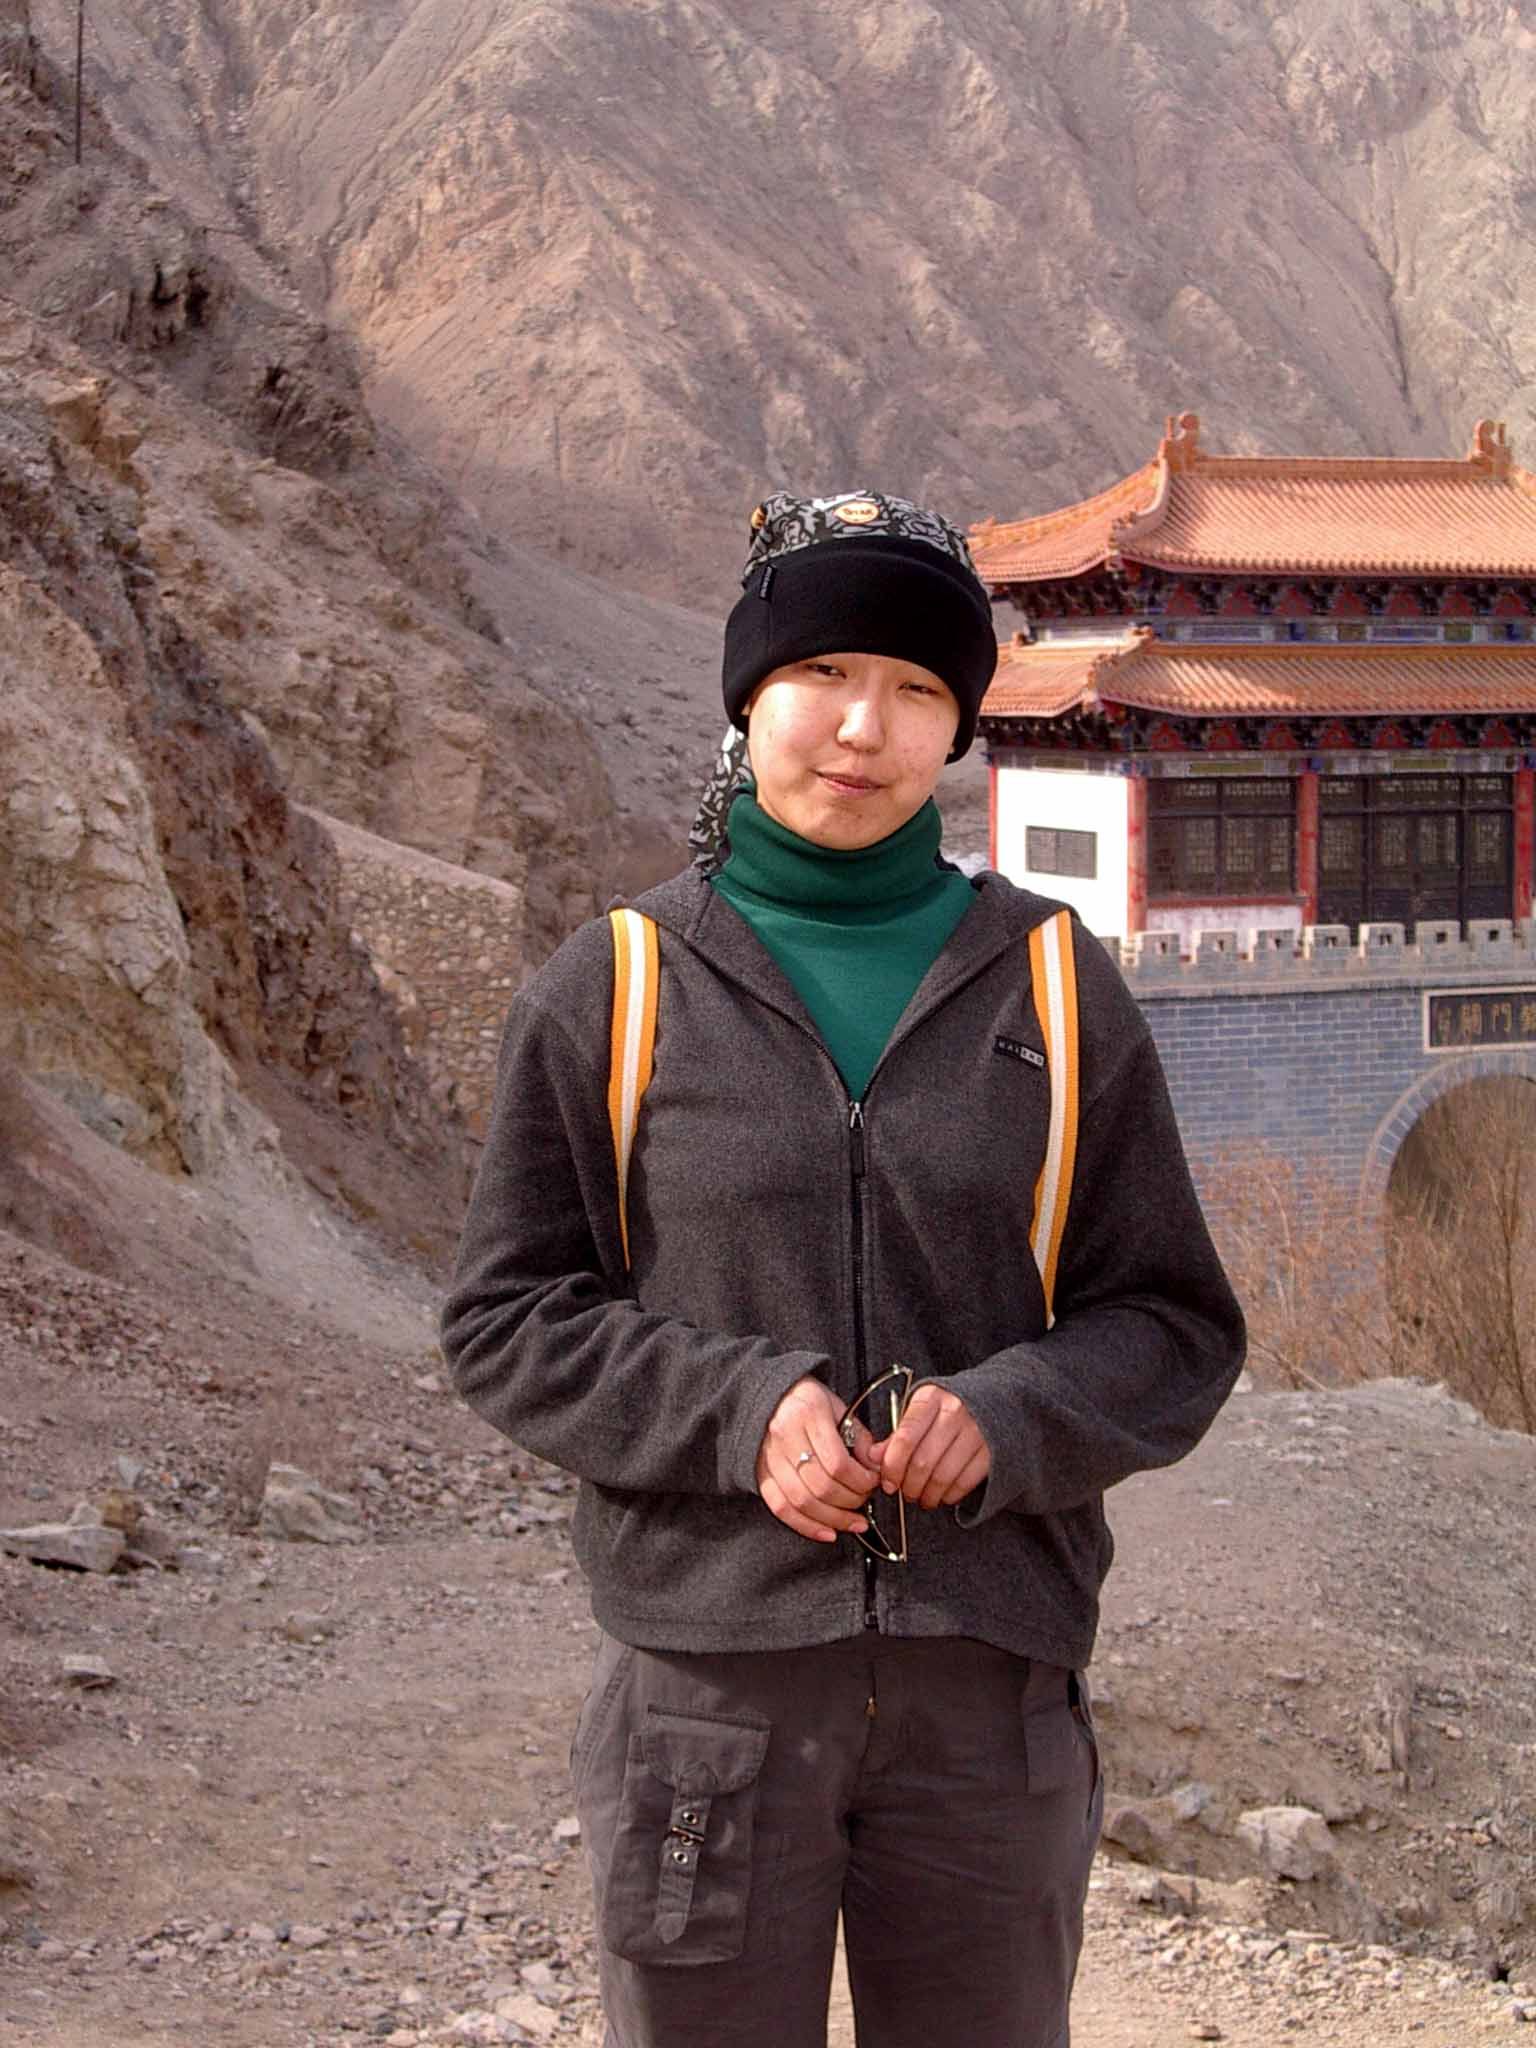 Liu Xin in front of the Iron Gate.